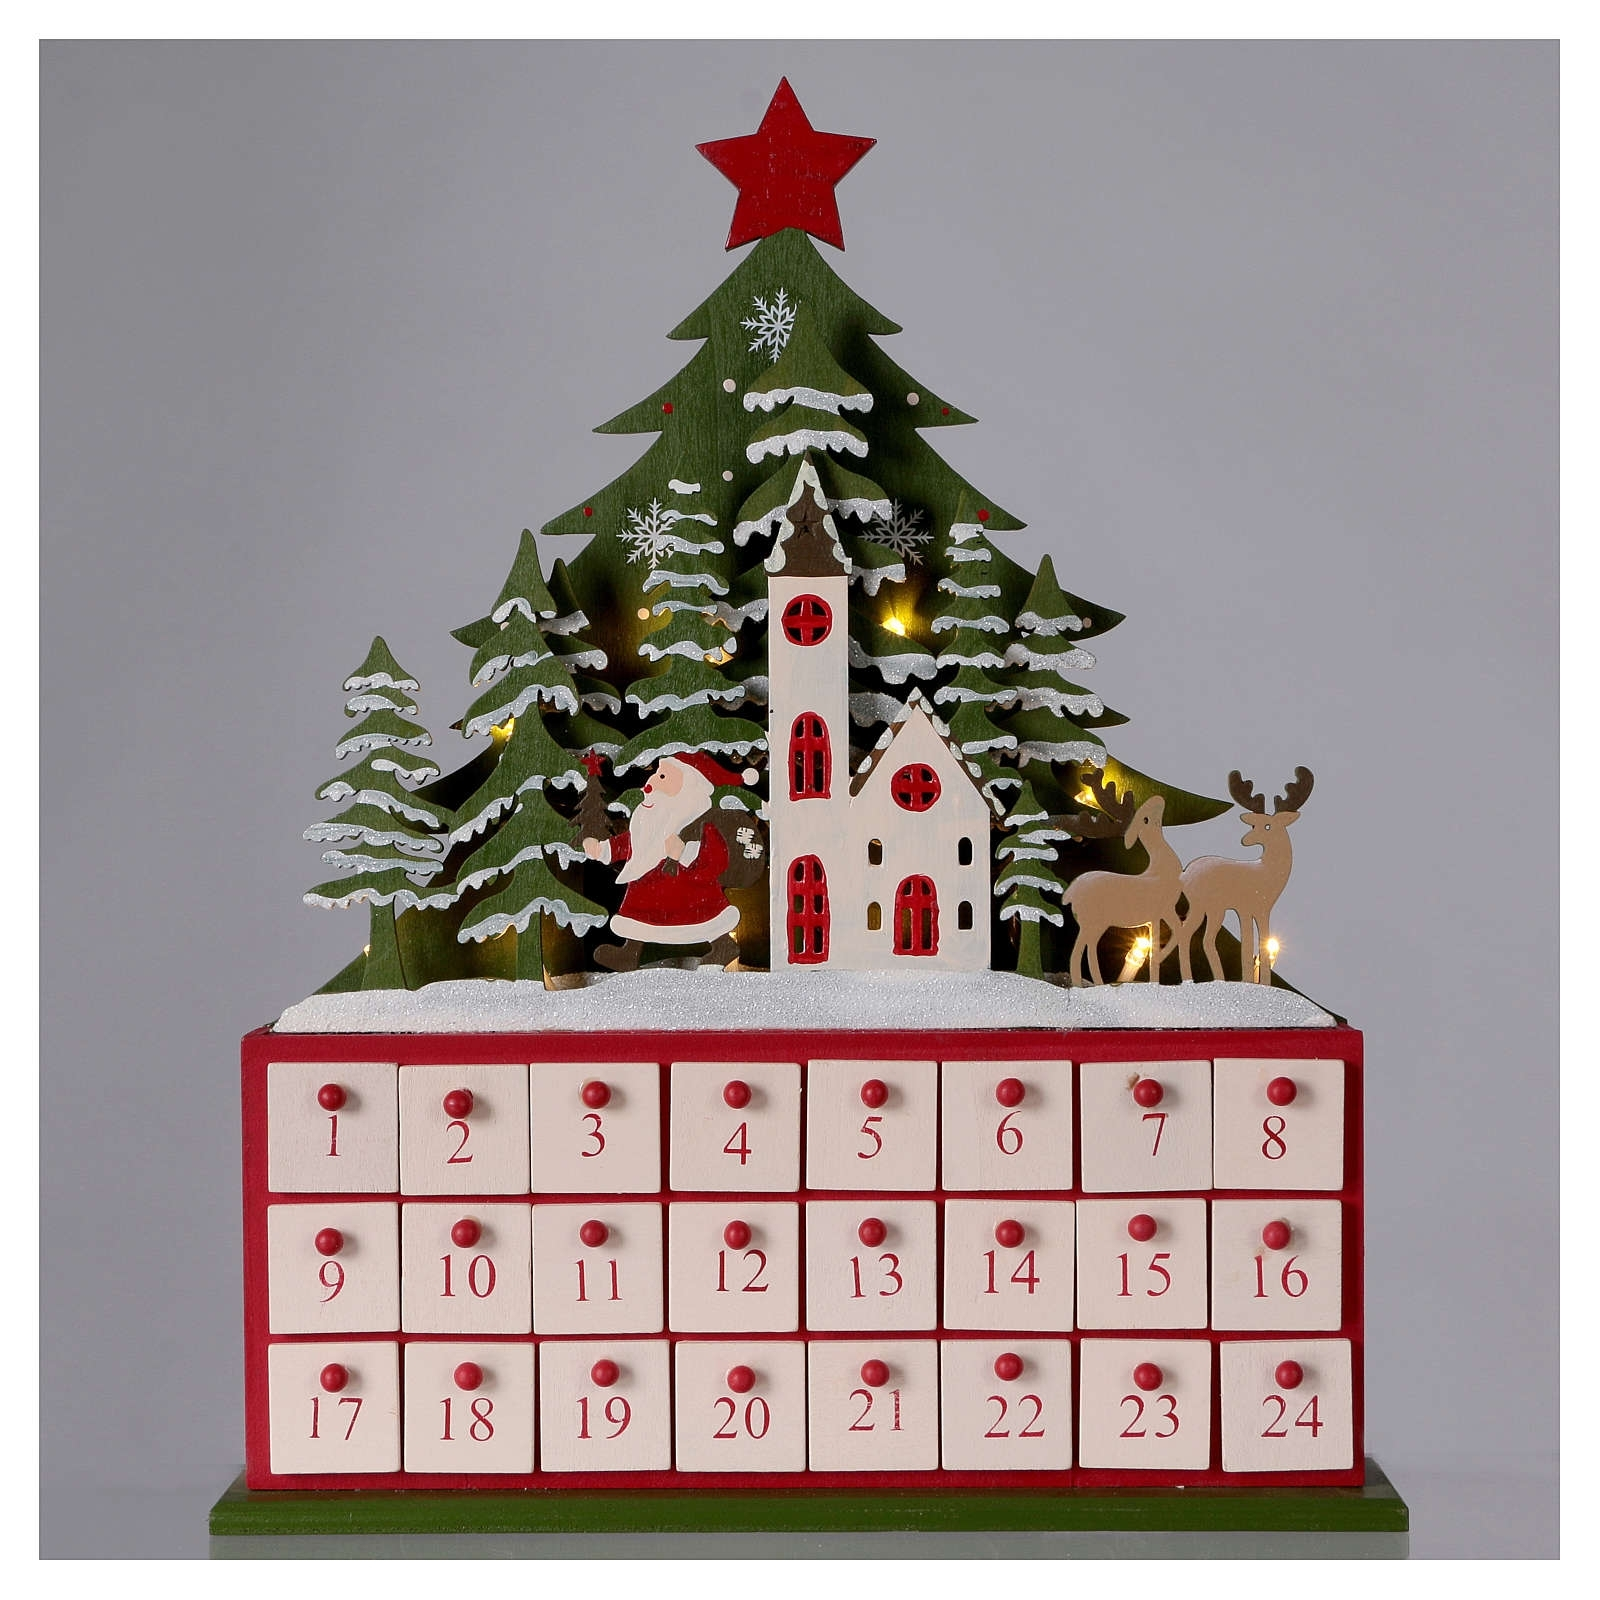 Wooden Advent Calendar Led With Small Boxes And Church 40 Cm with regard to Wooden Advent Calendar With Lights And Boxes